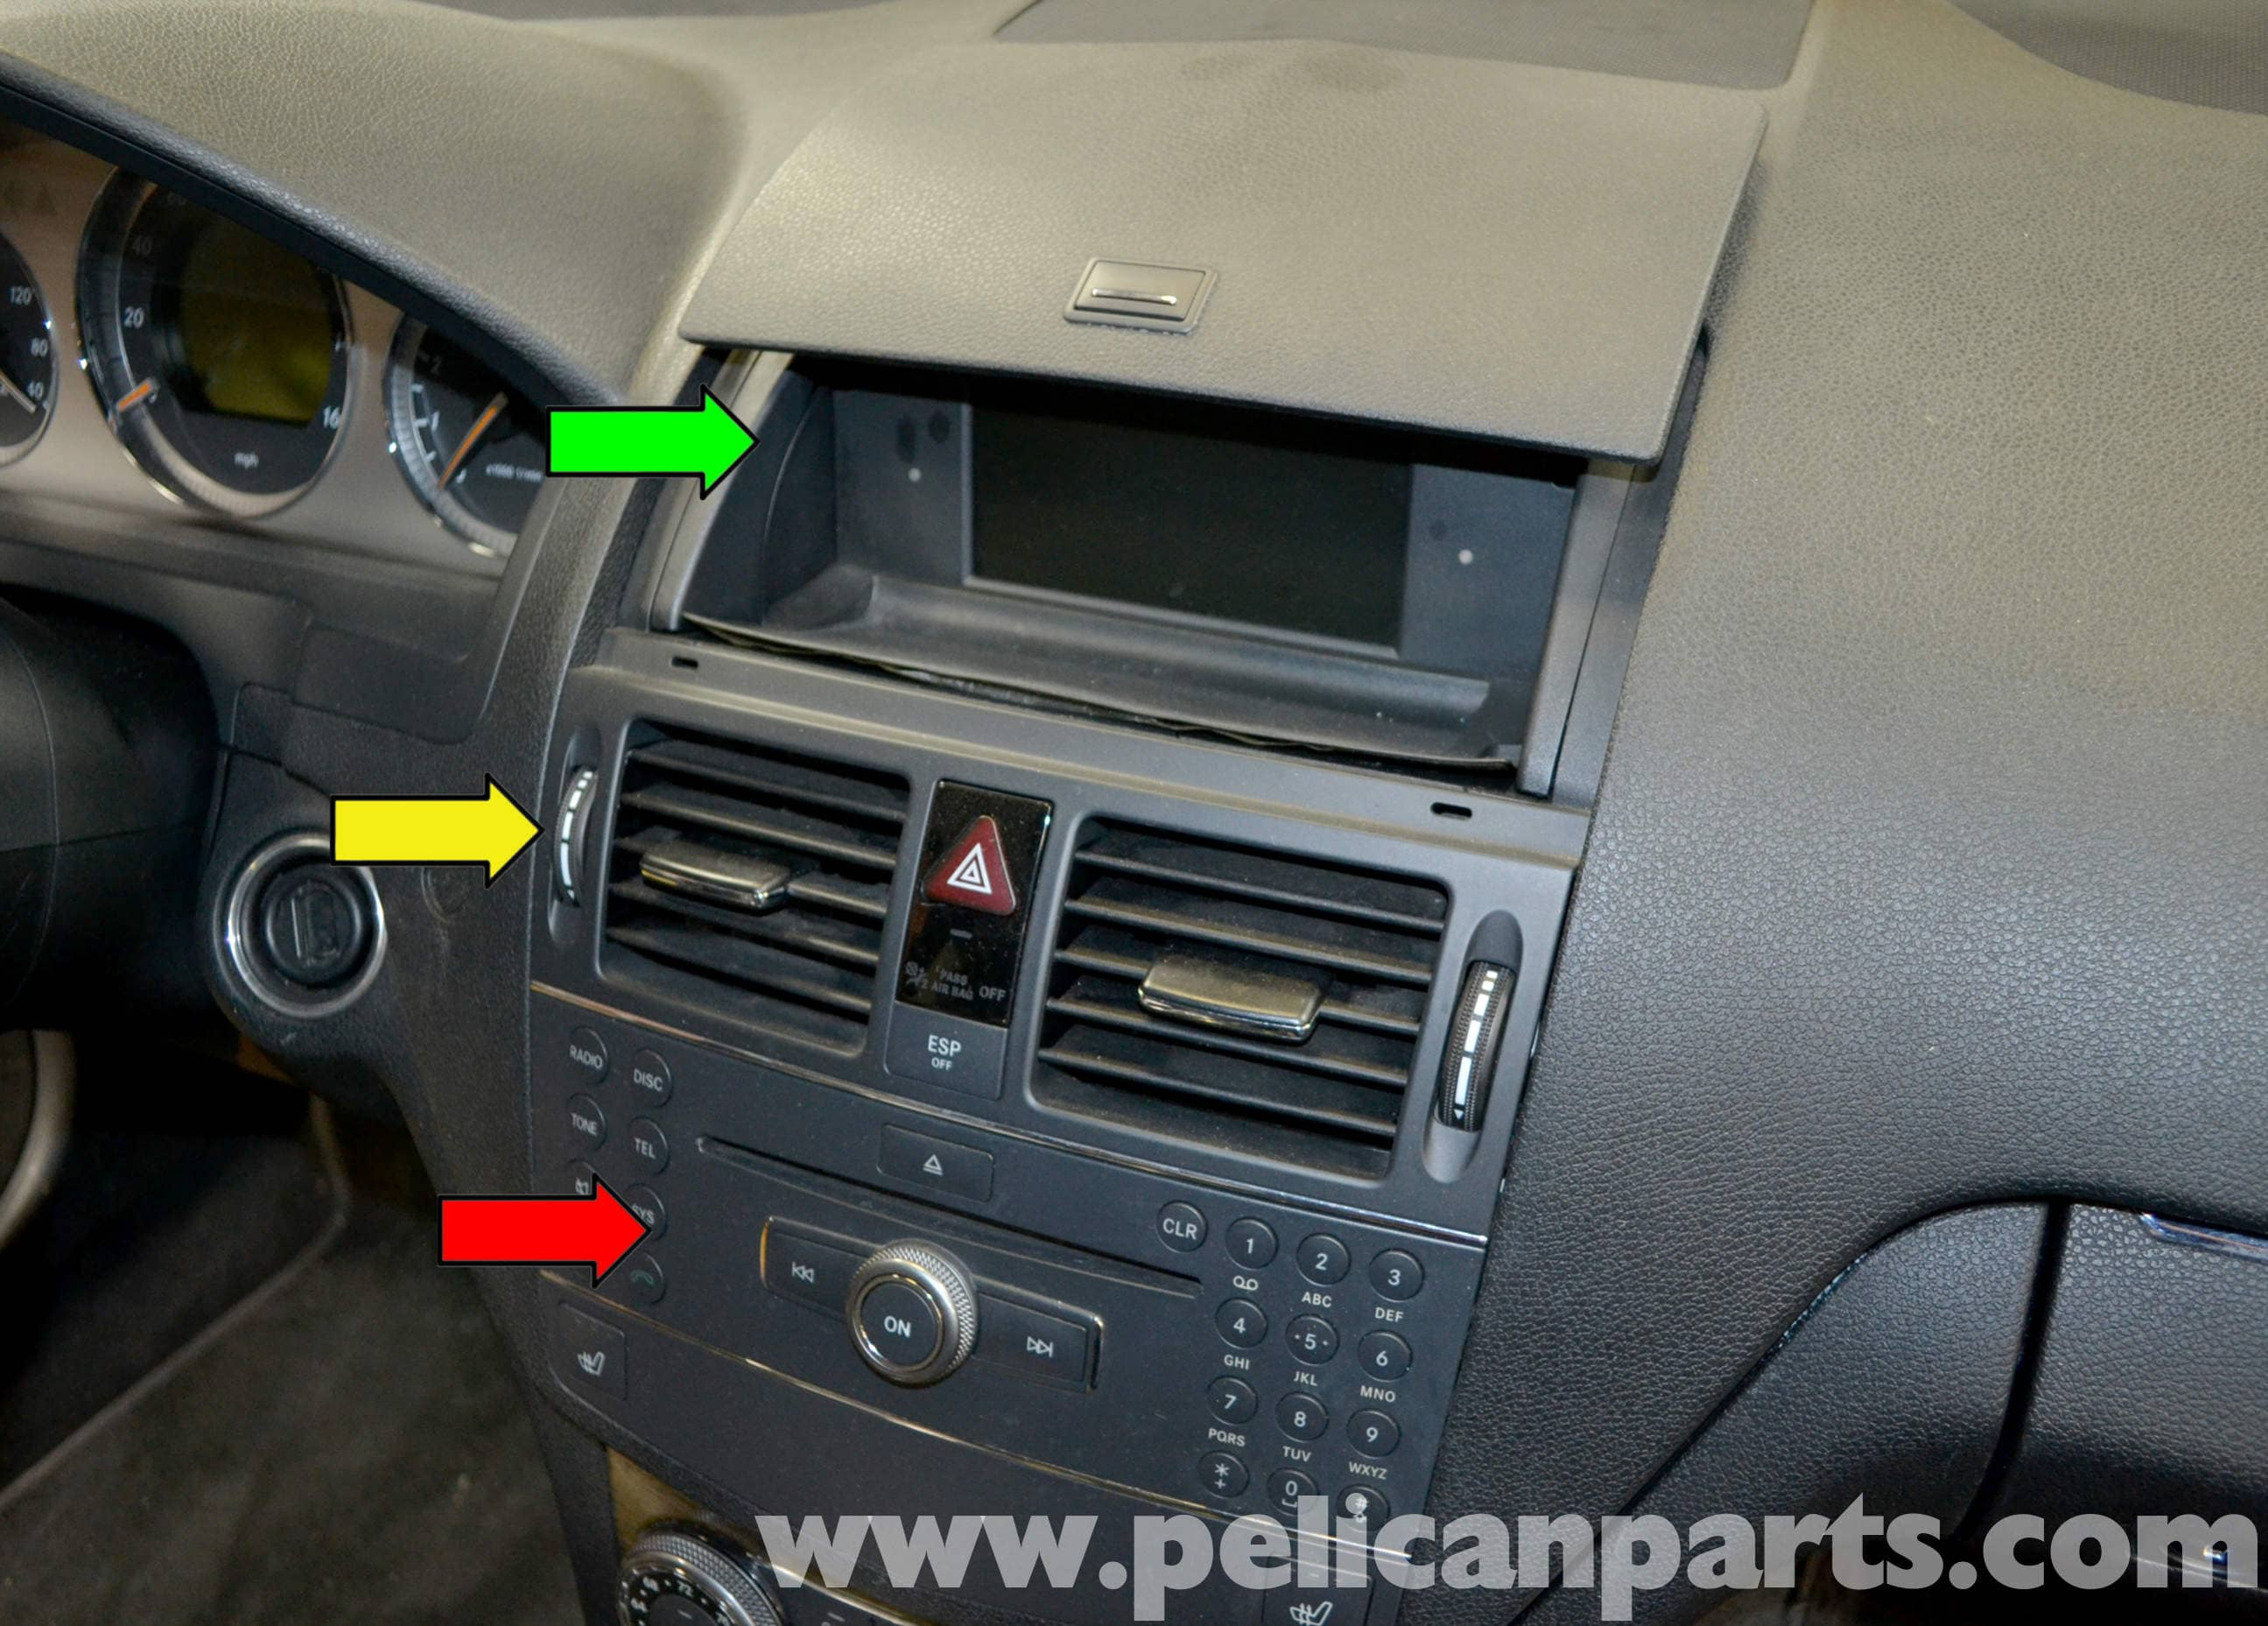 Mercedes benz w204 stereo removal 2008 2014 c250 c300 for How long does it take to build a mercedes benz